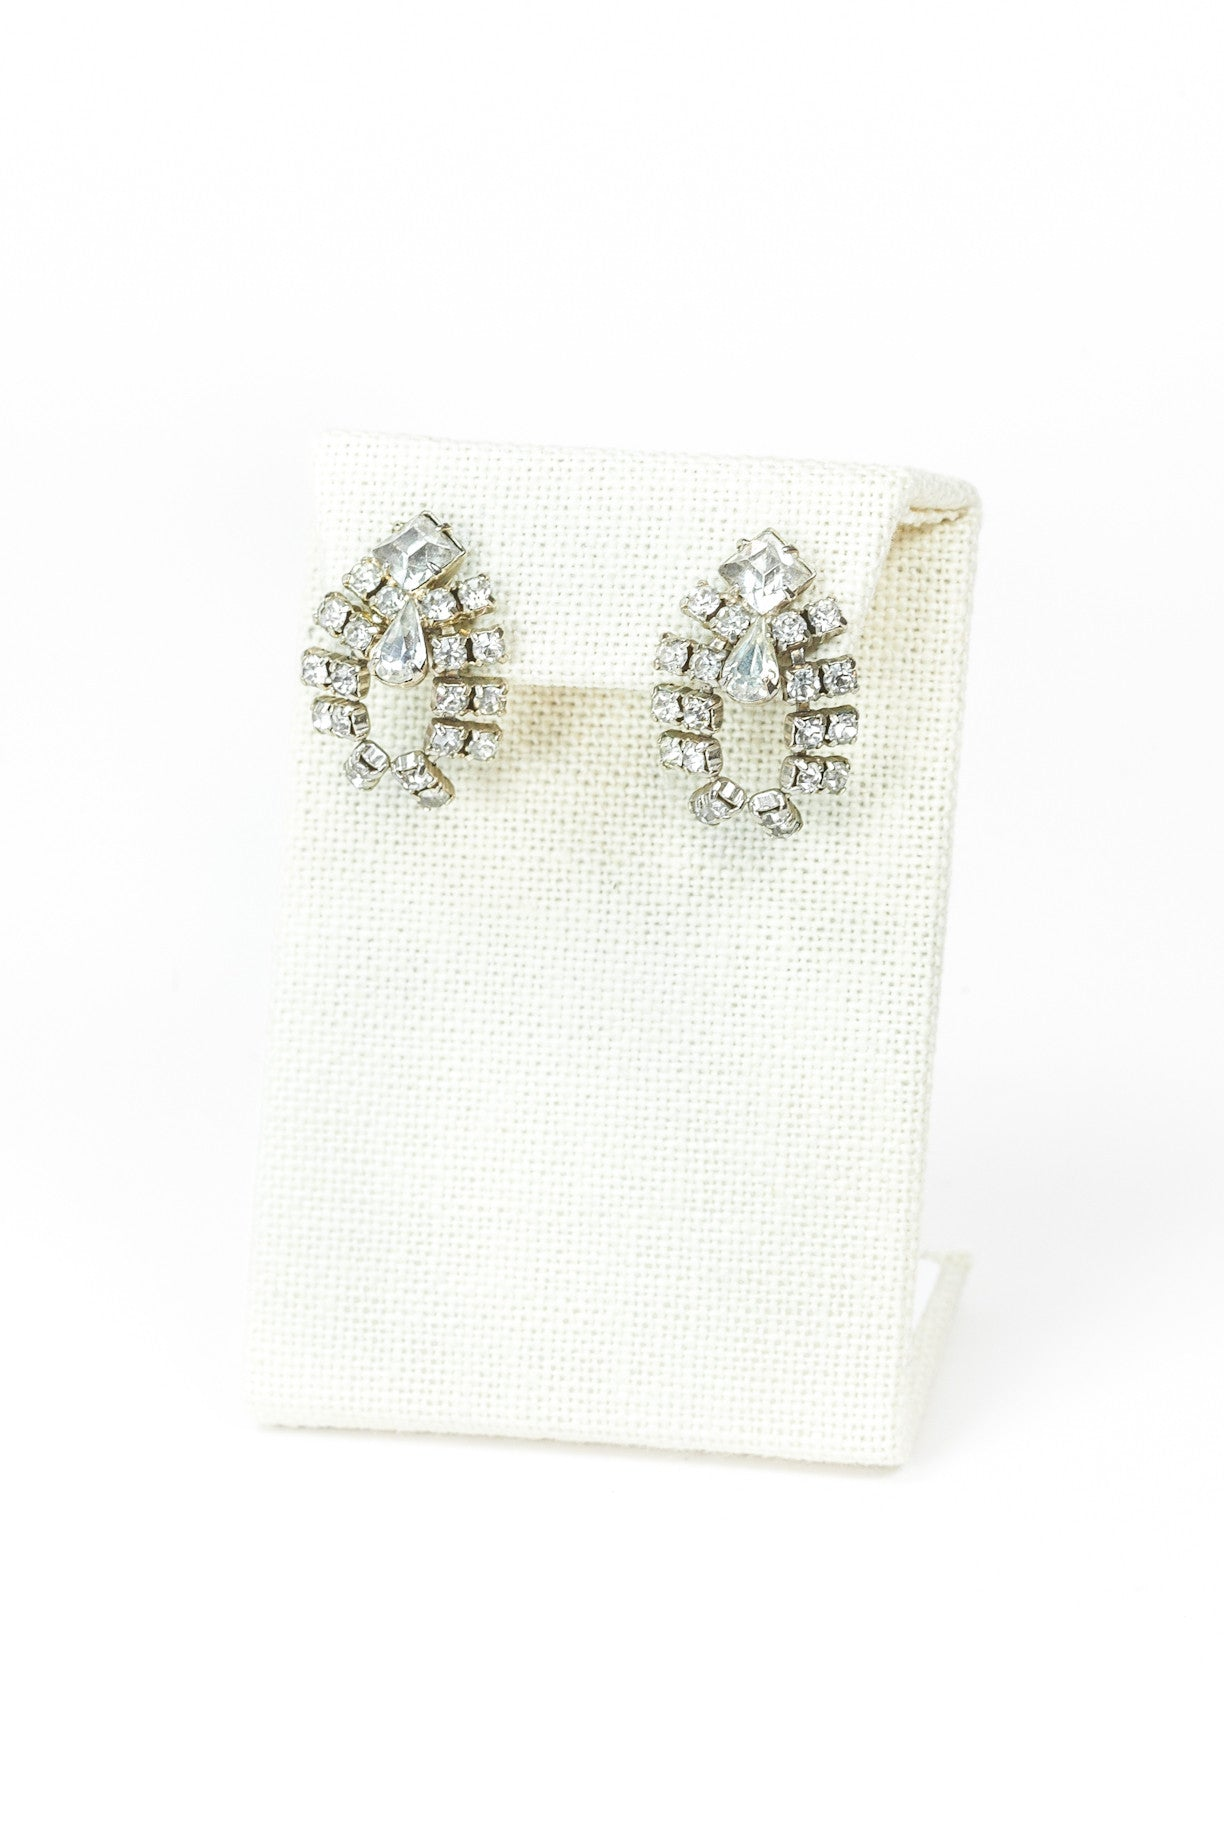 60's__Vintage__Teardrop Rhinestone Earrings